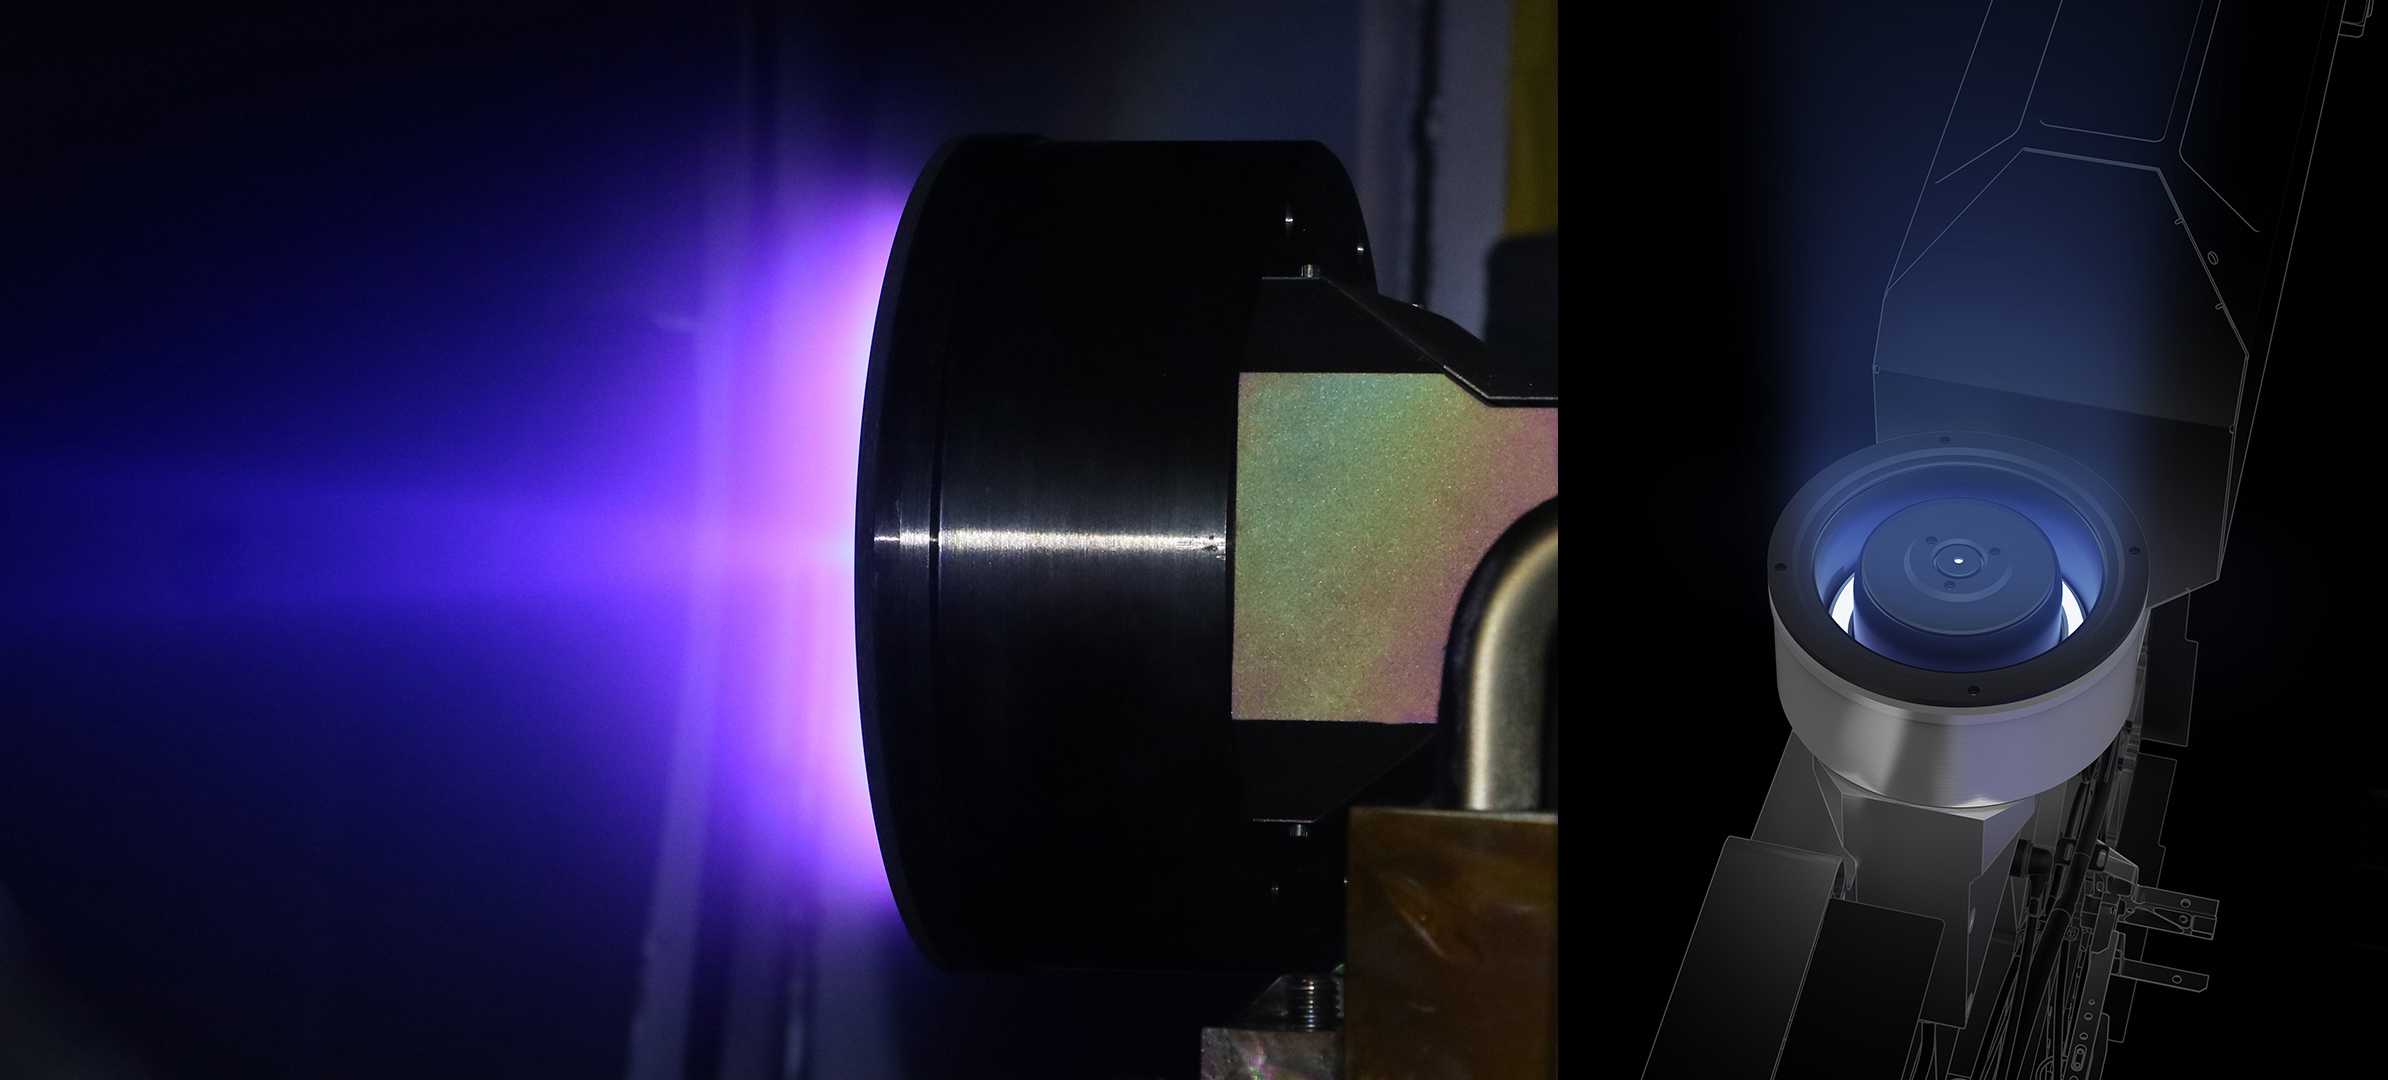 Starlink krypton ion thrusters (SpaceX) overview 1